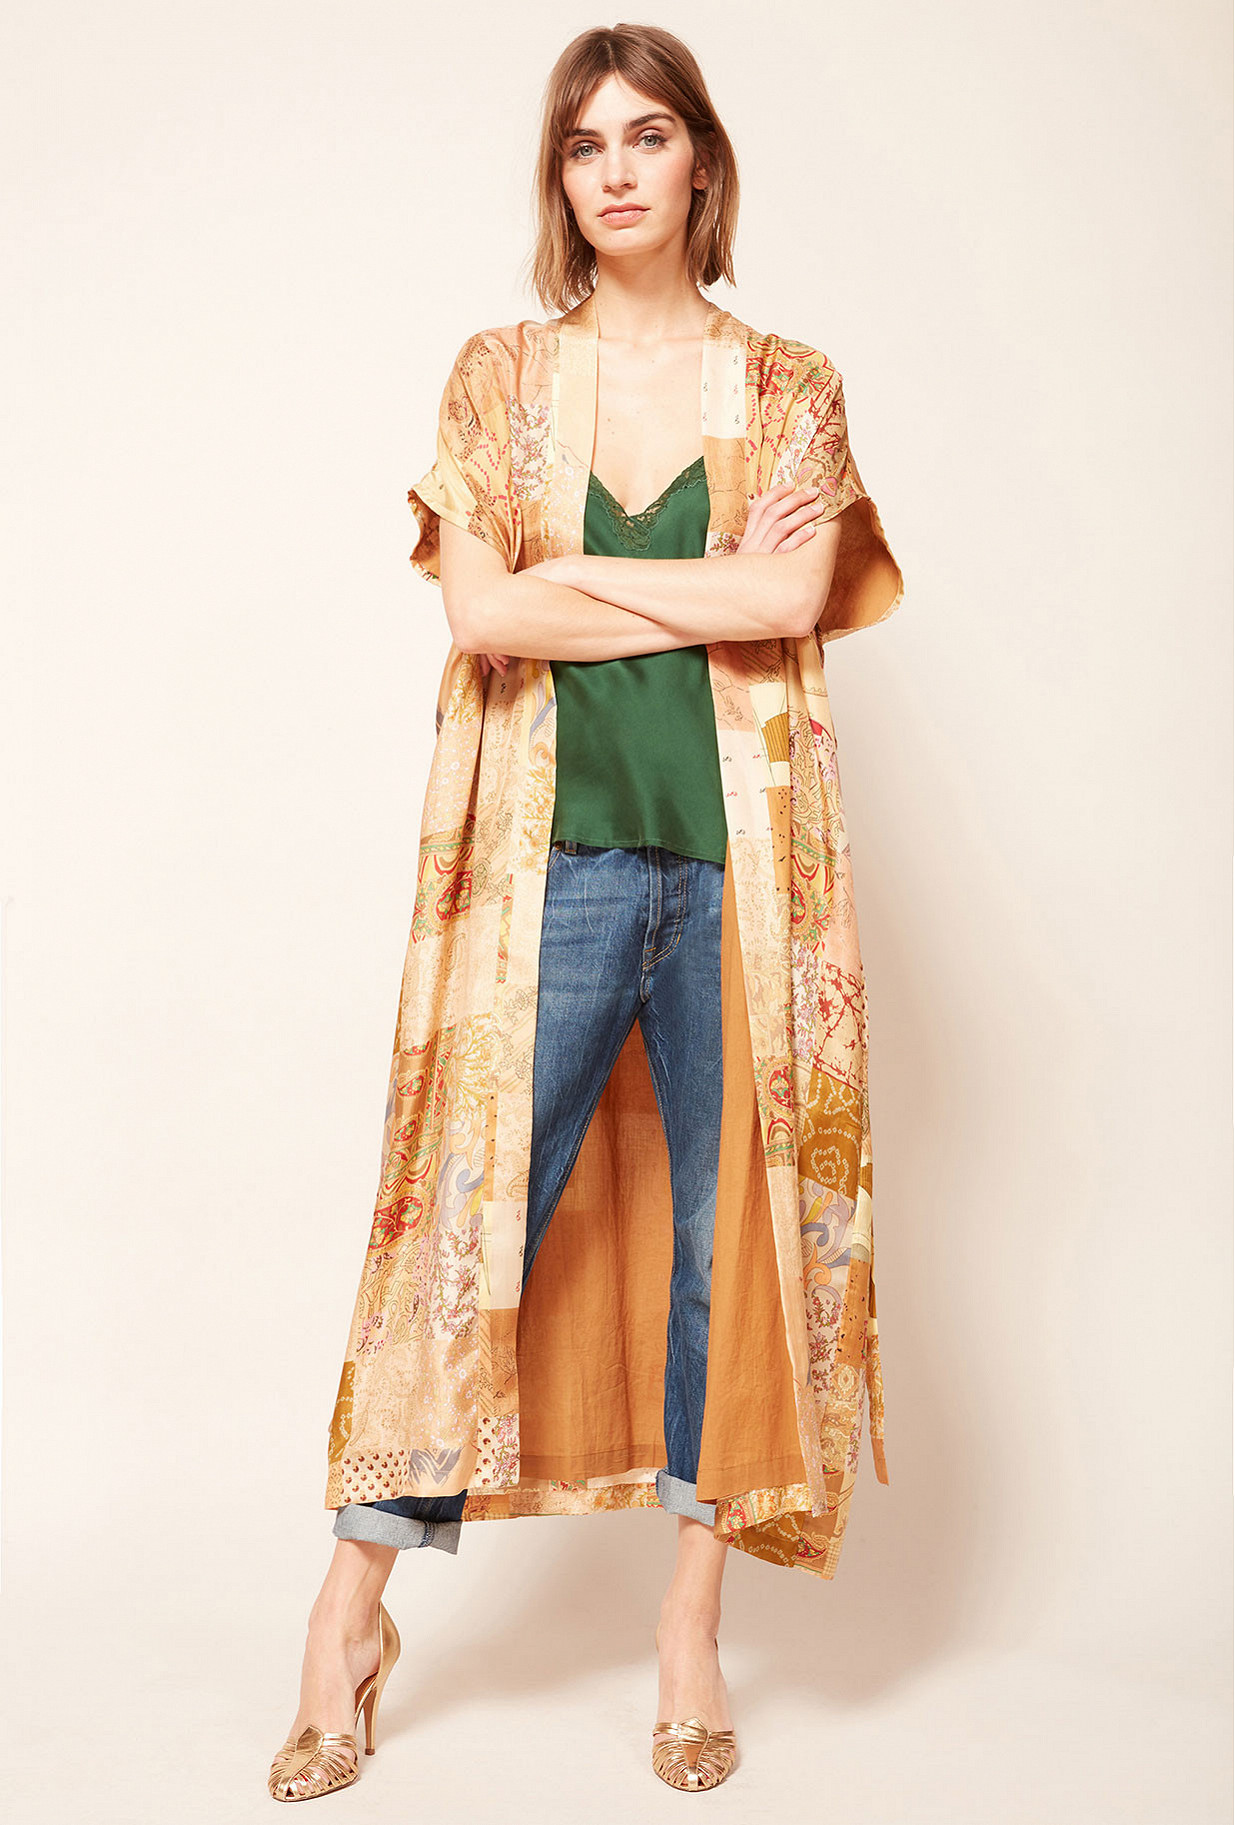 Paris clothes store Kimono Pachmina french designer fashion Paris